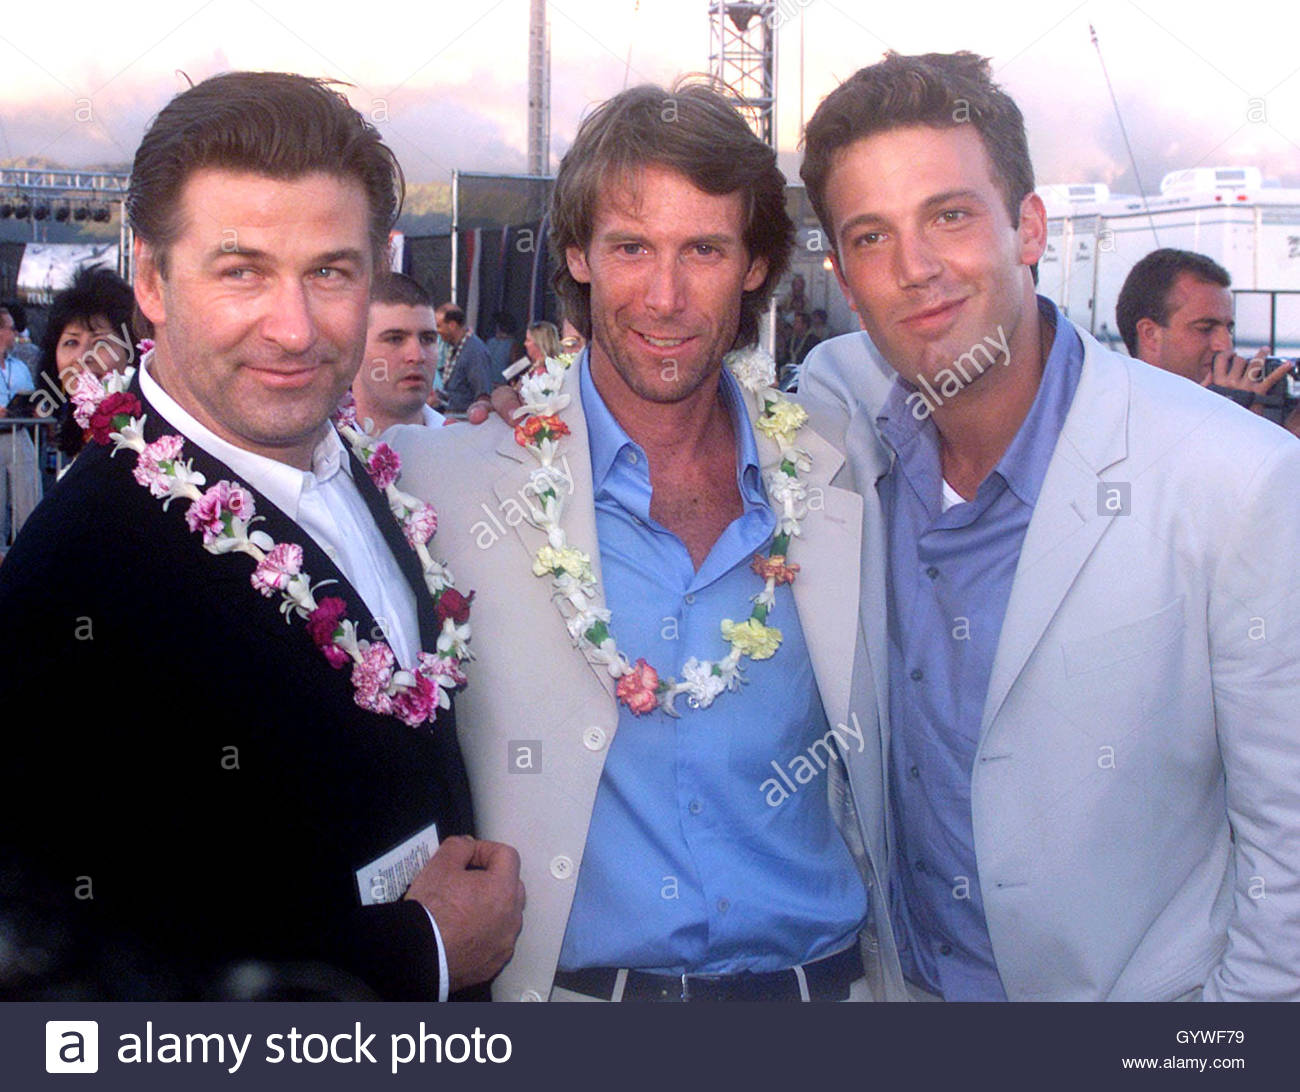 director and producer of the action drama film pearl harbor director and producer of the action drama film pearl harbor michael bay c poses cast members alec baldwin l and ben affleck in honolulu at pearl